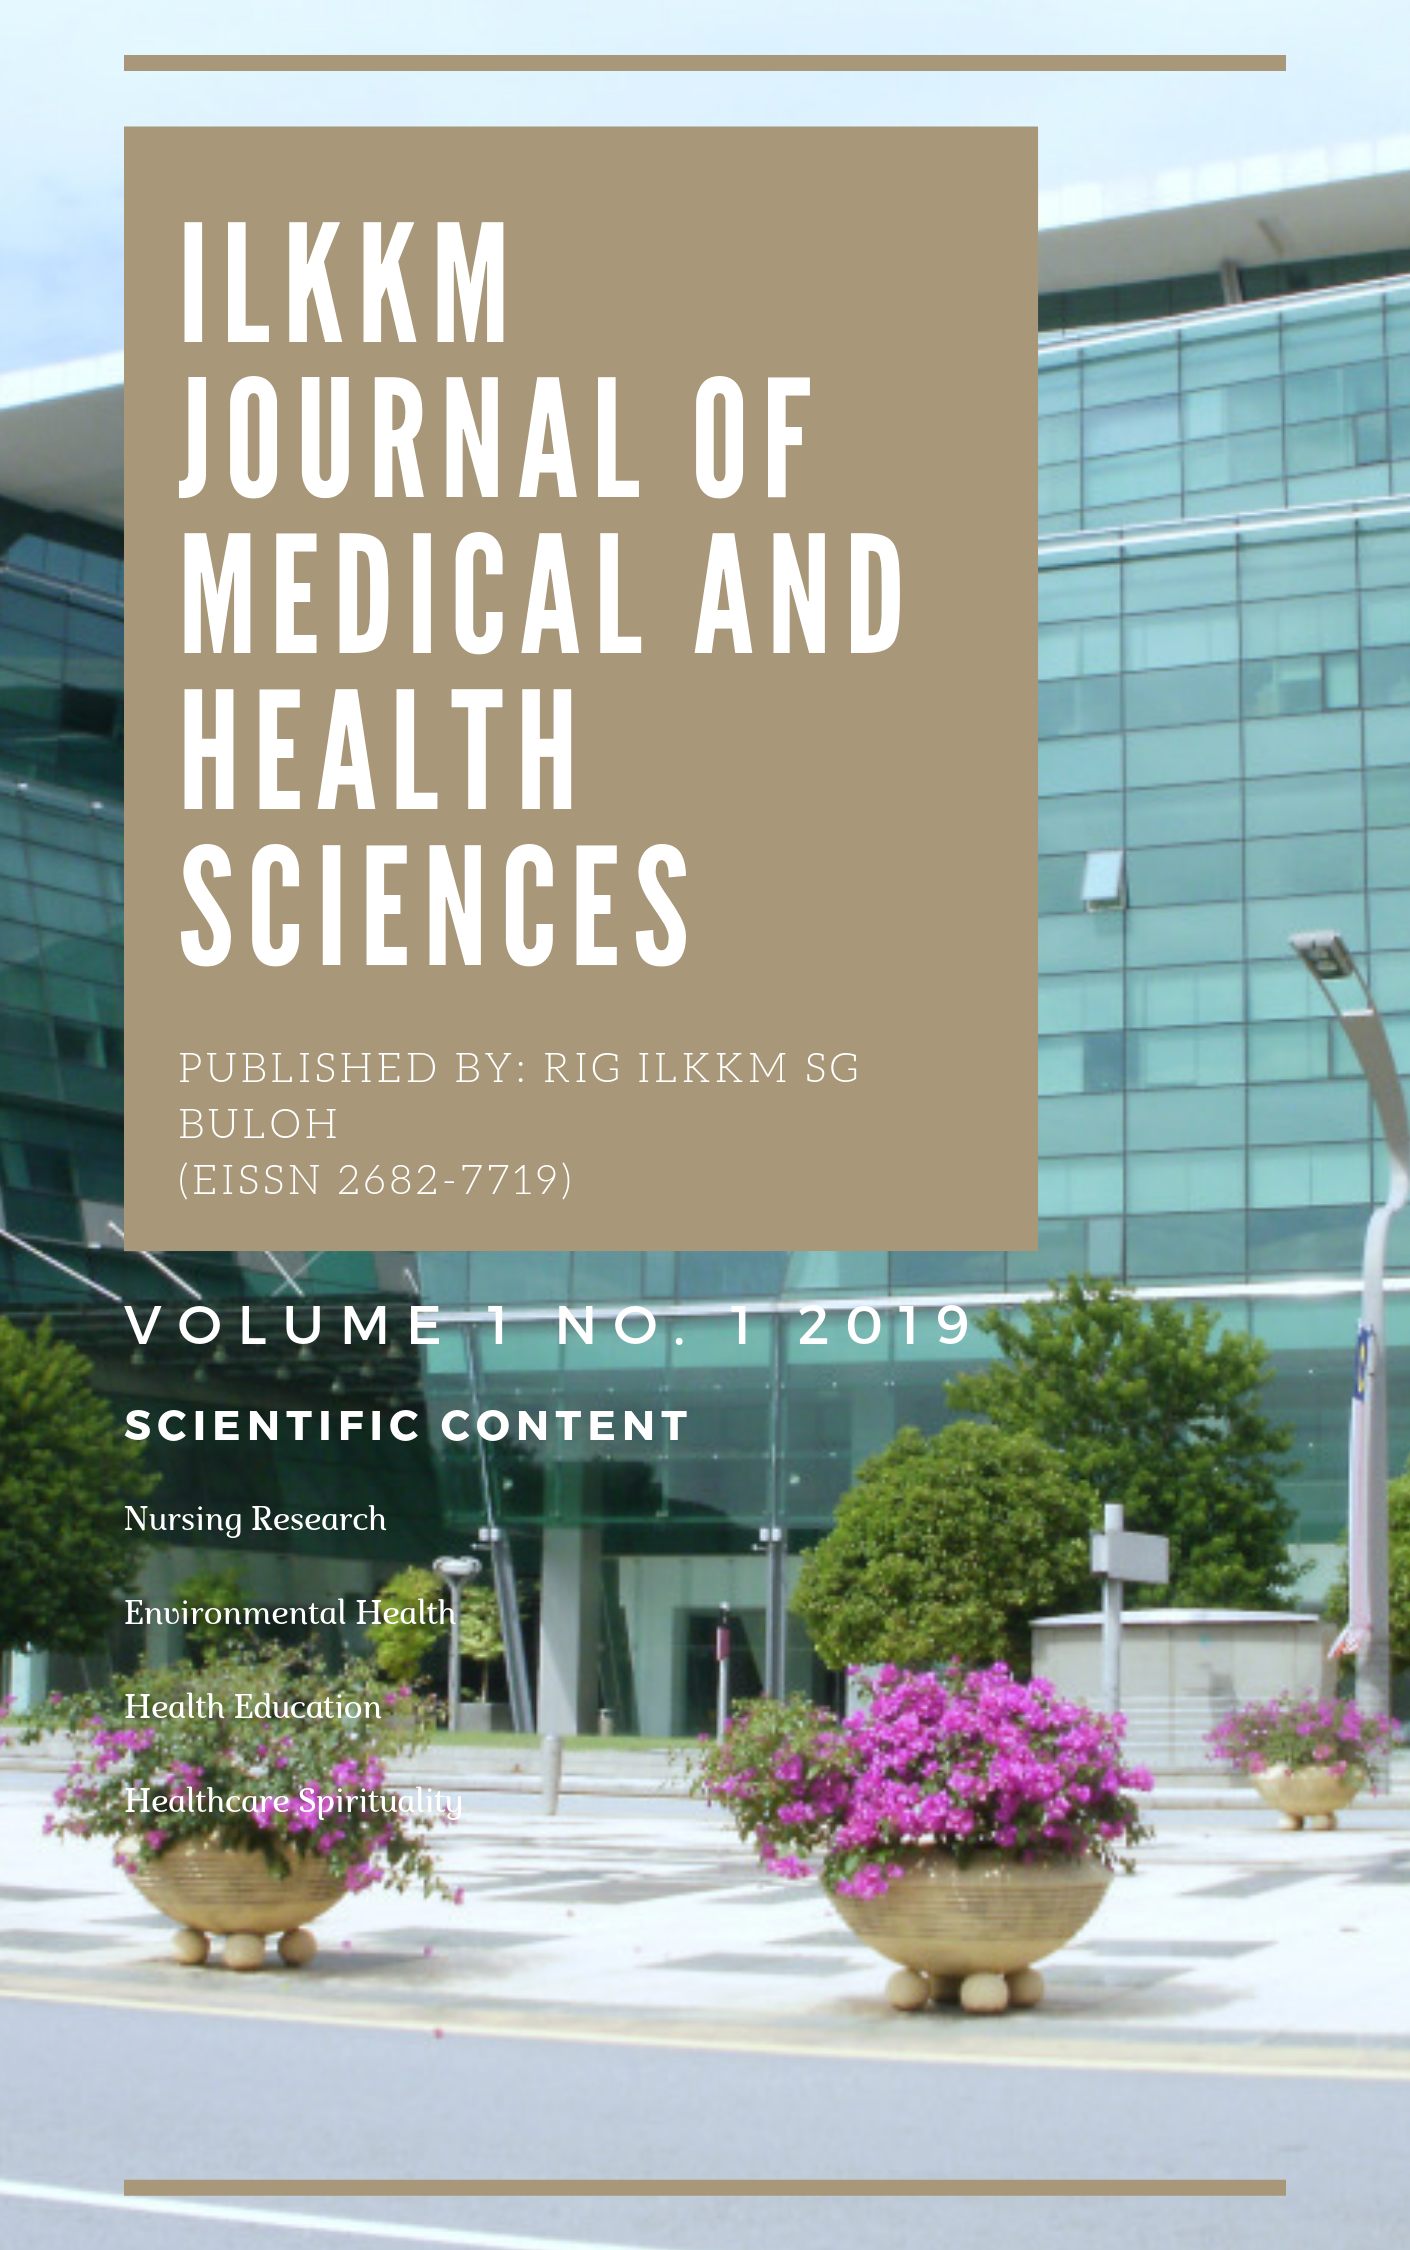 ilkkm journal medical health sciences volume no 1